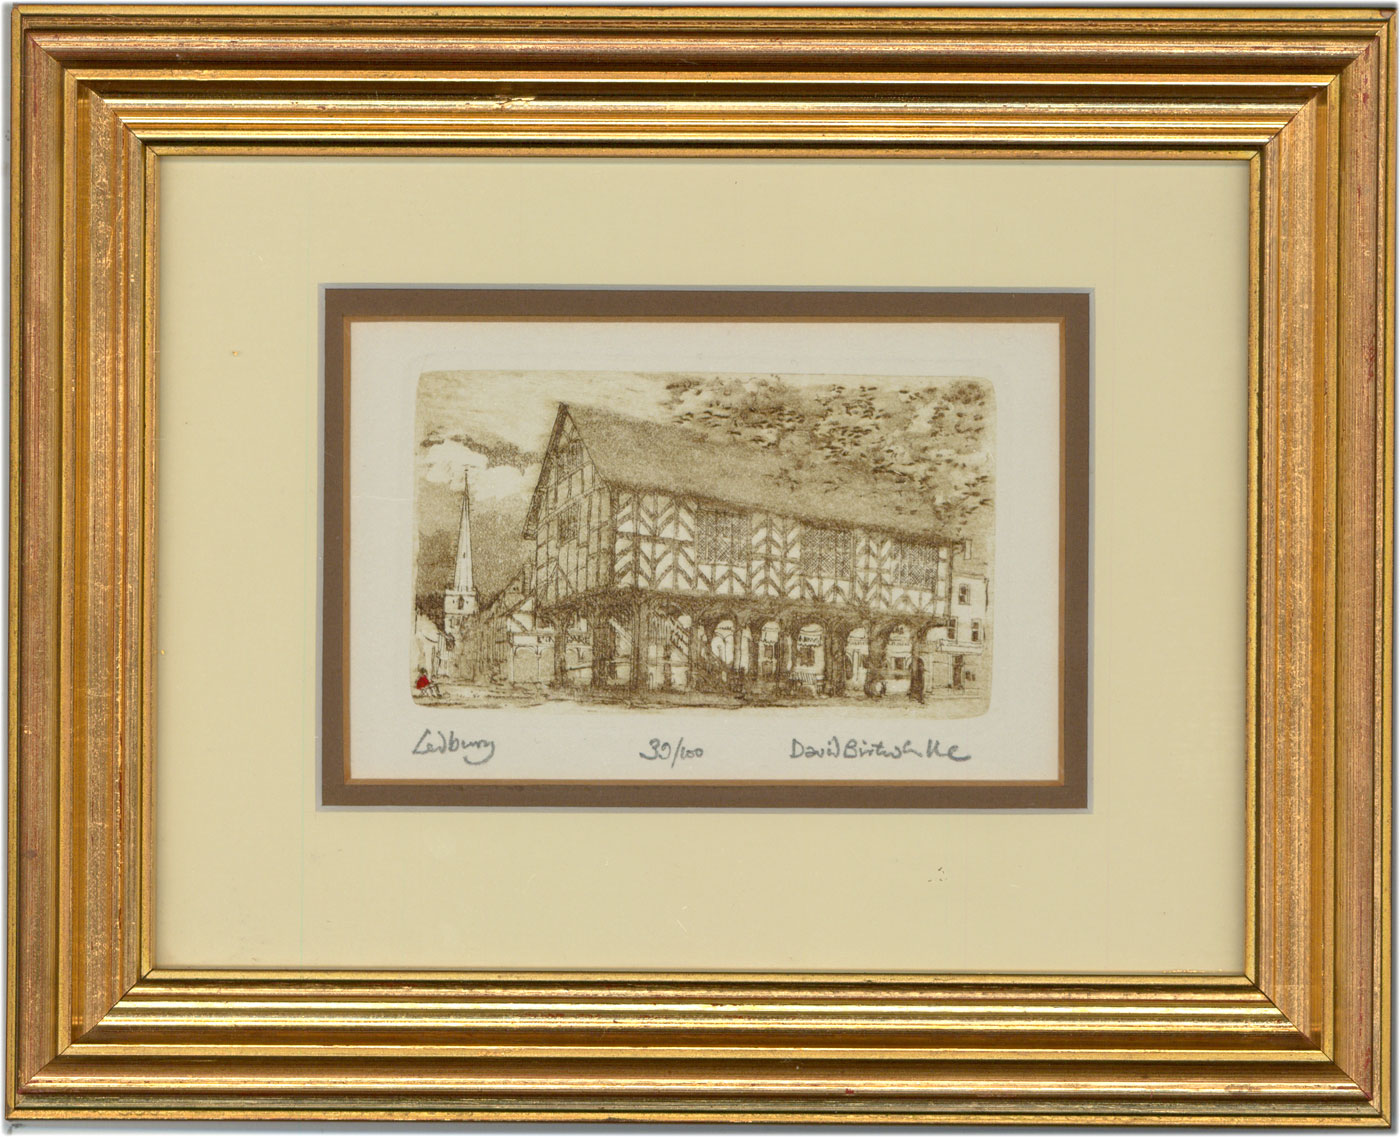 David Birtwhistle - Signed and Framed Contemporary Etching, The Market House